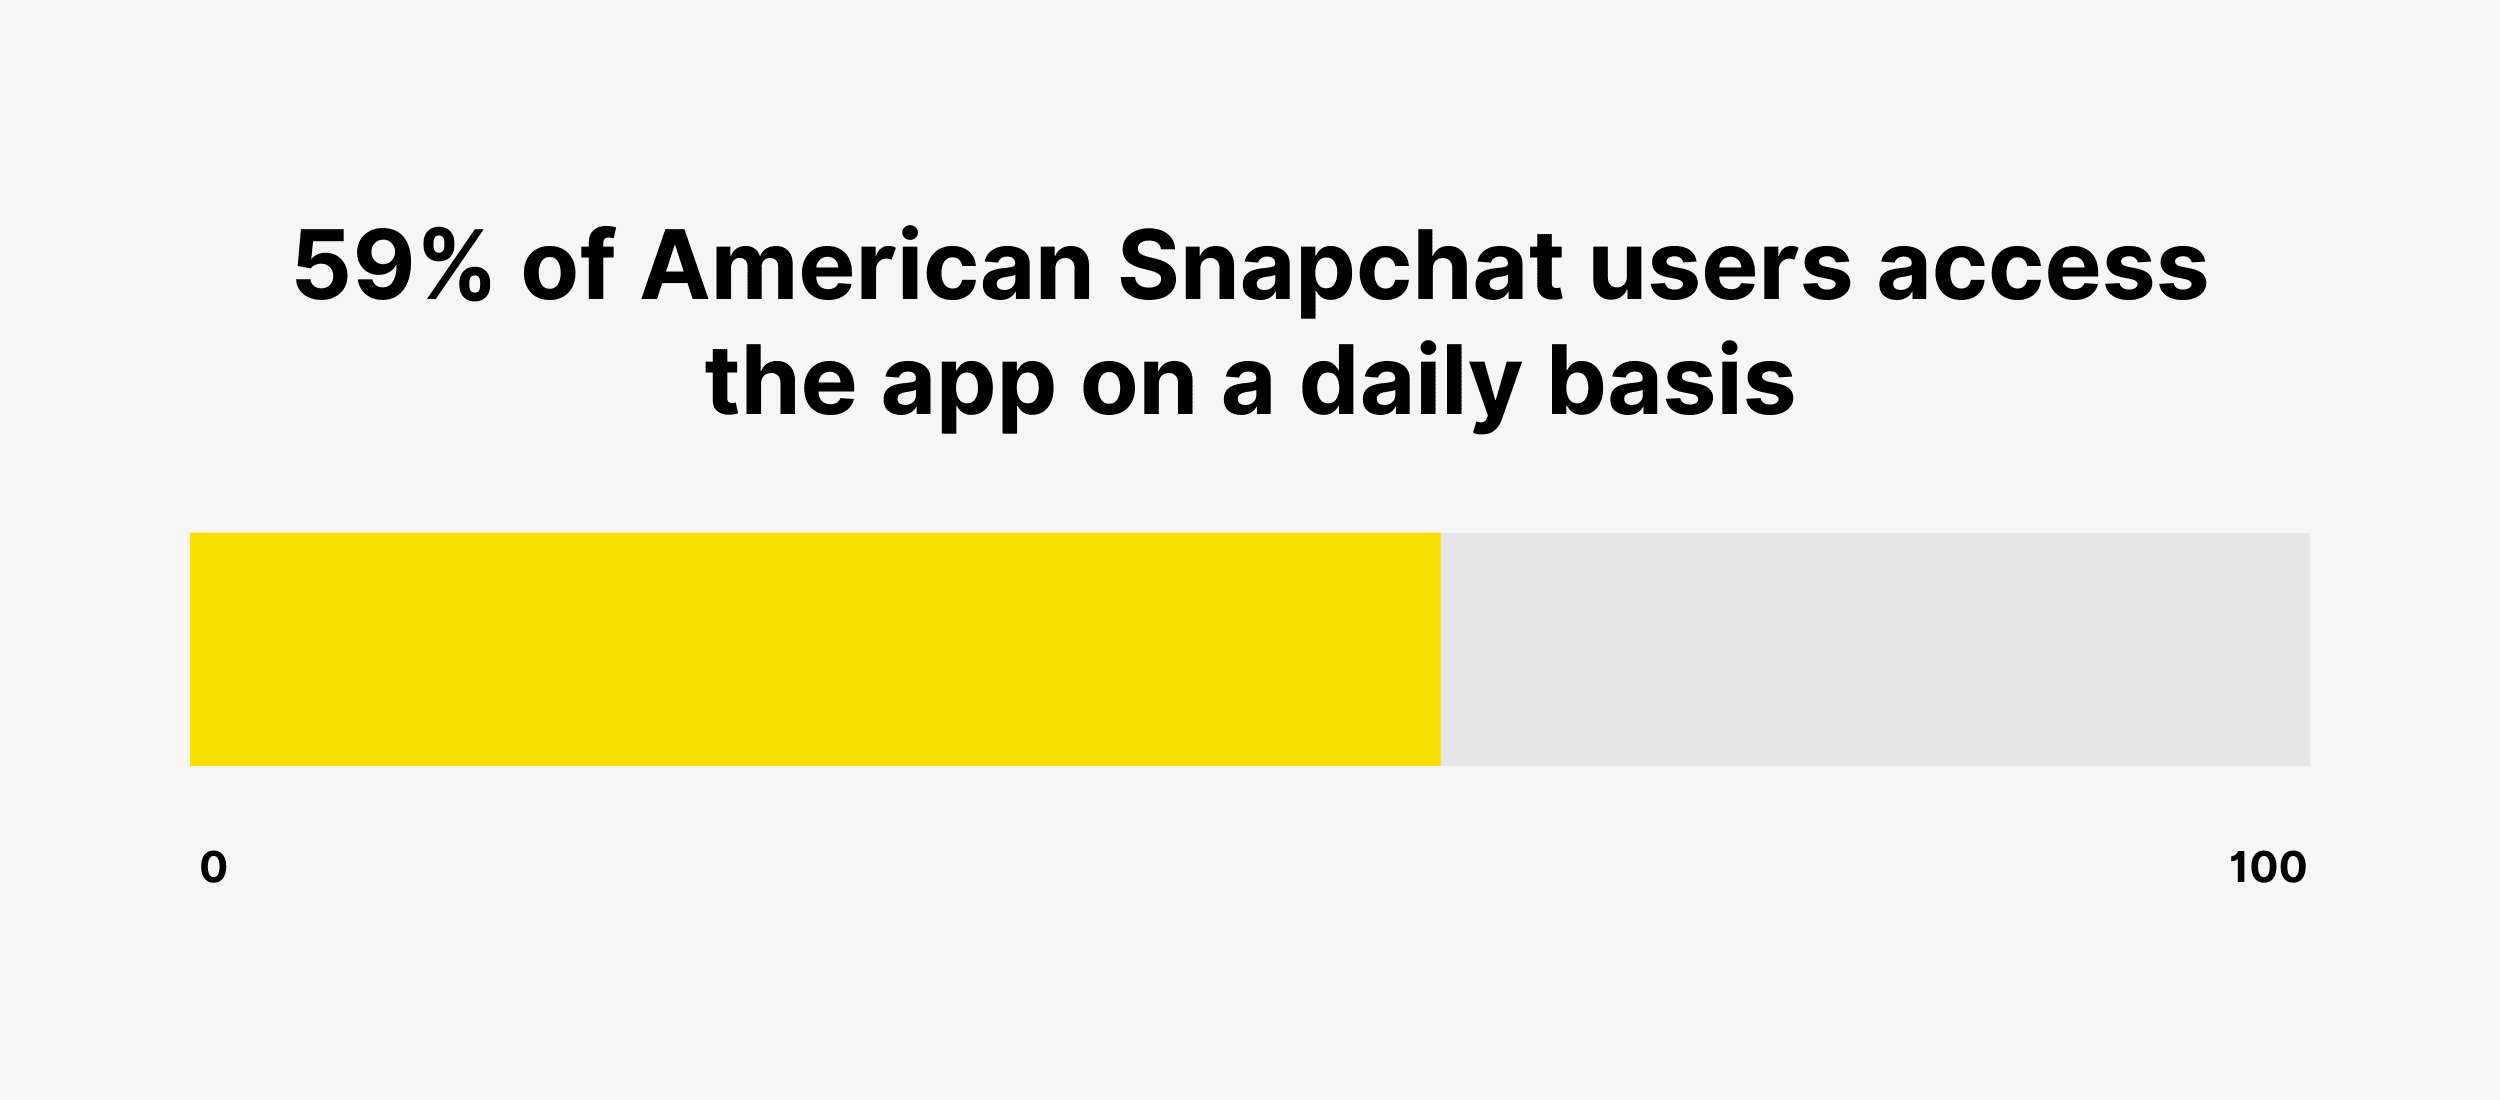 59% of American Snapchat users access the app on a daily basis